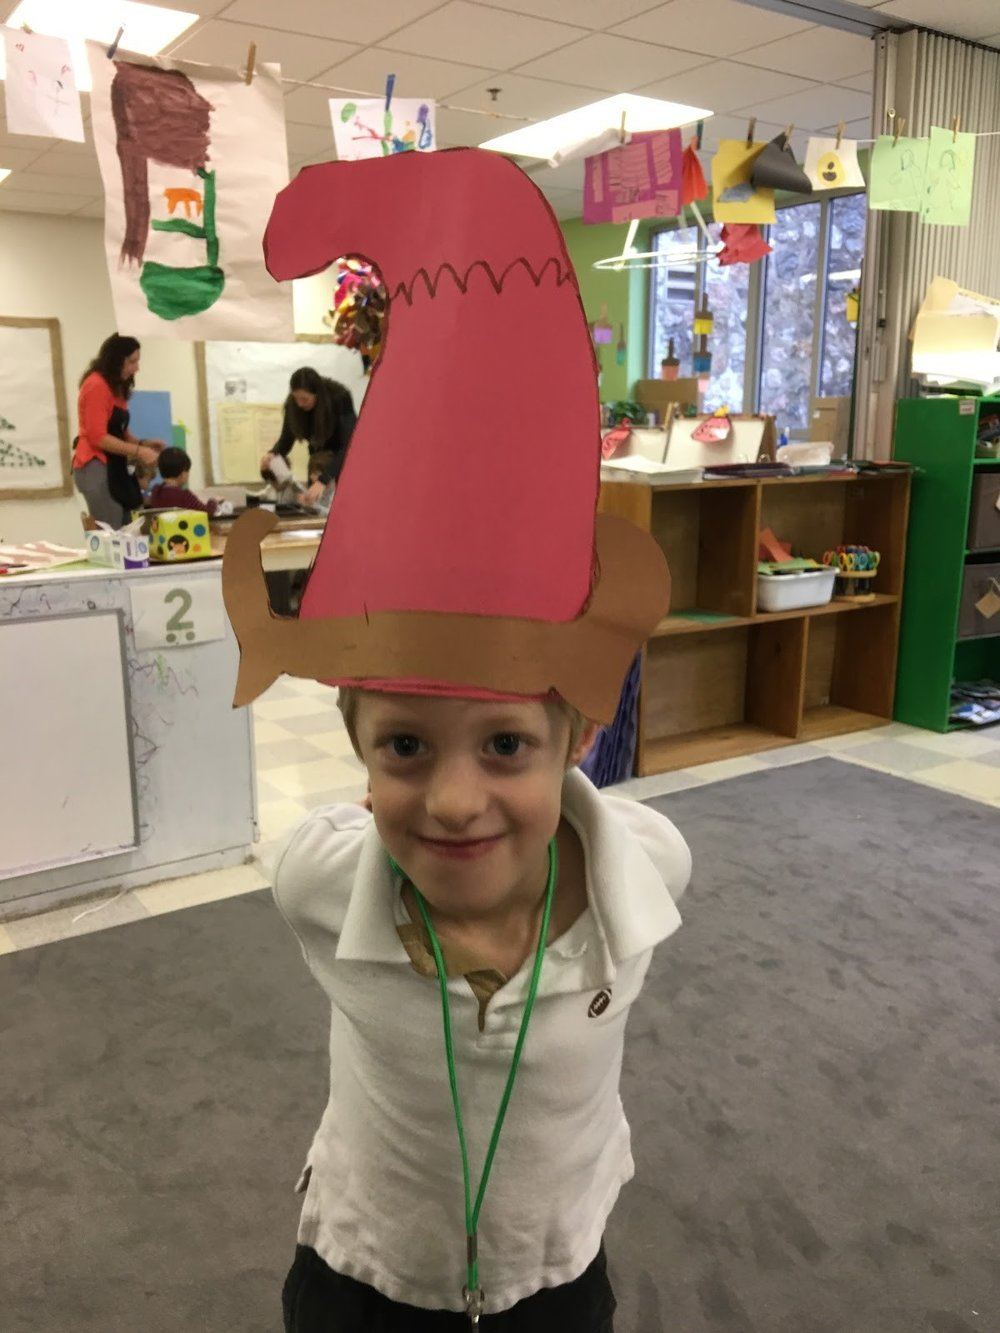 We have had some very hard working elves making choices throughout the 5-day classes.